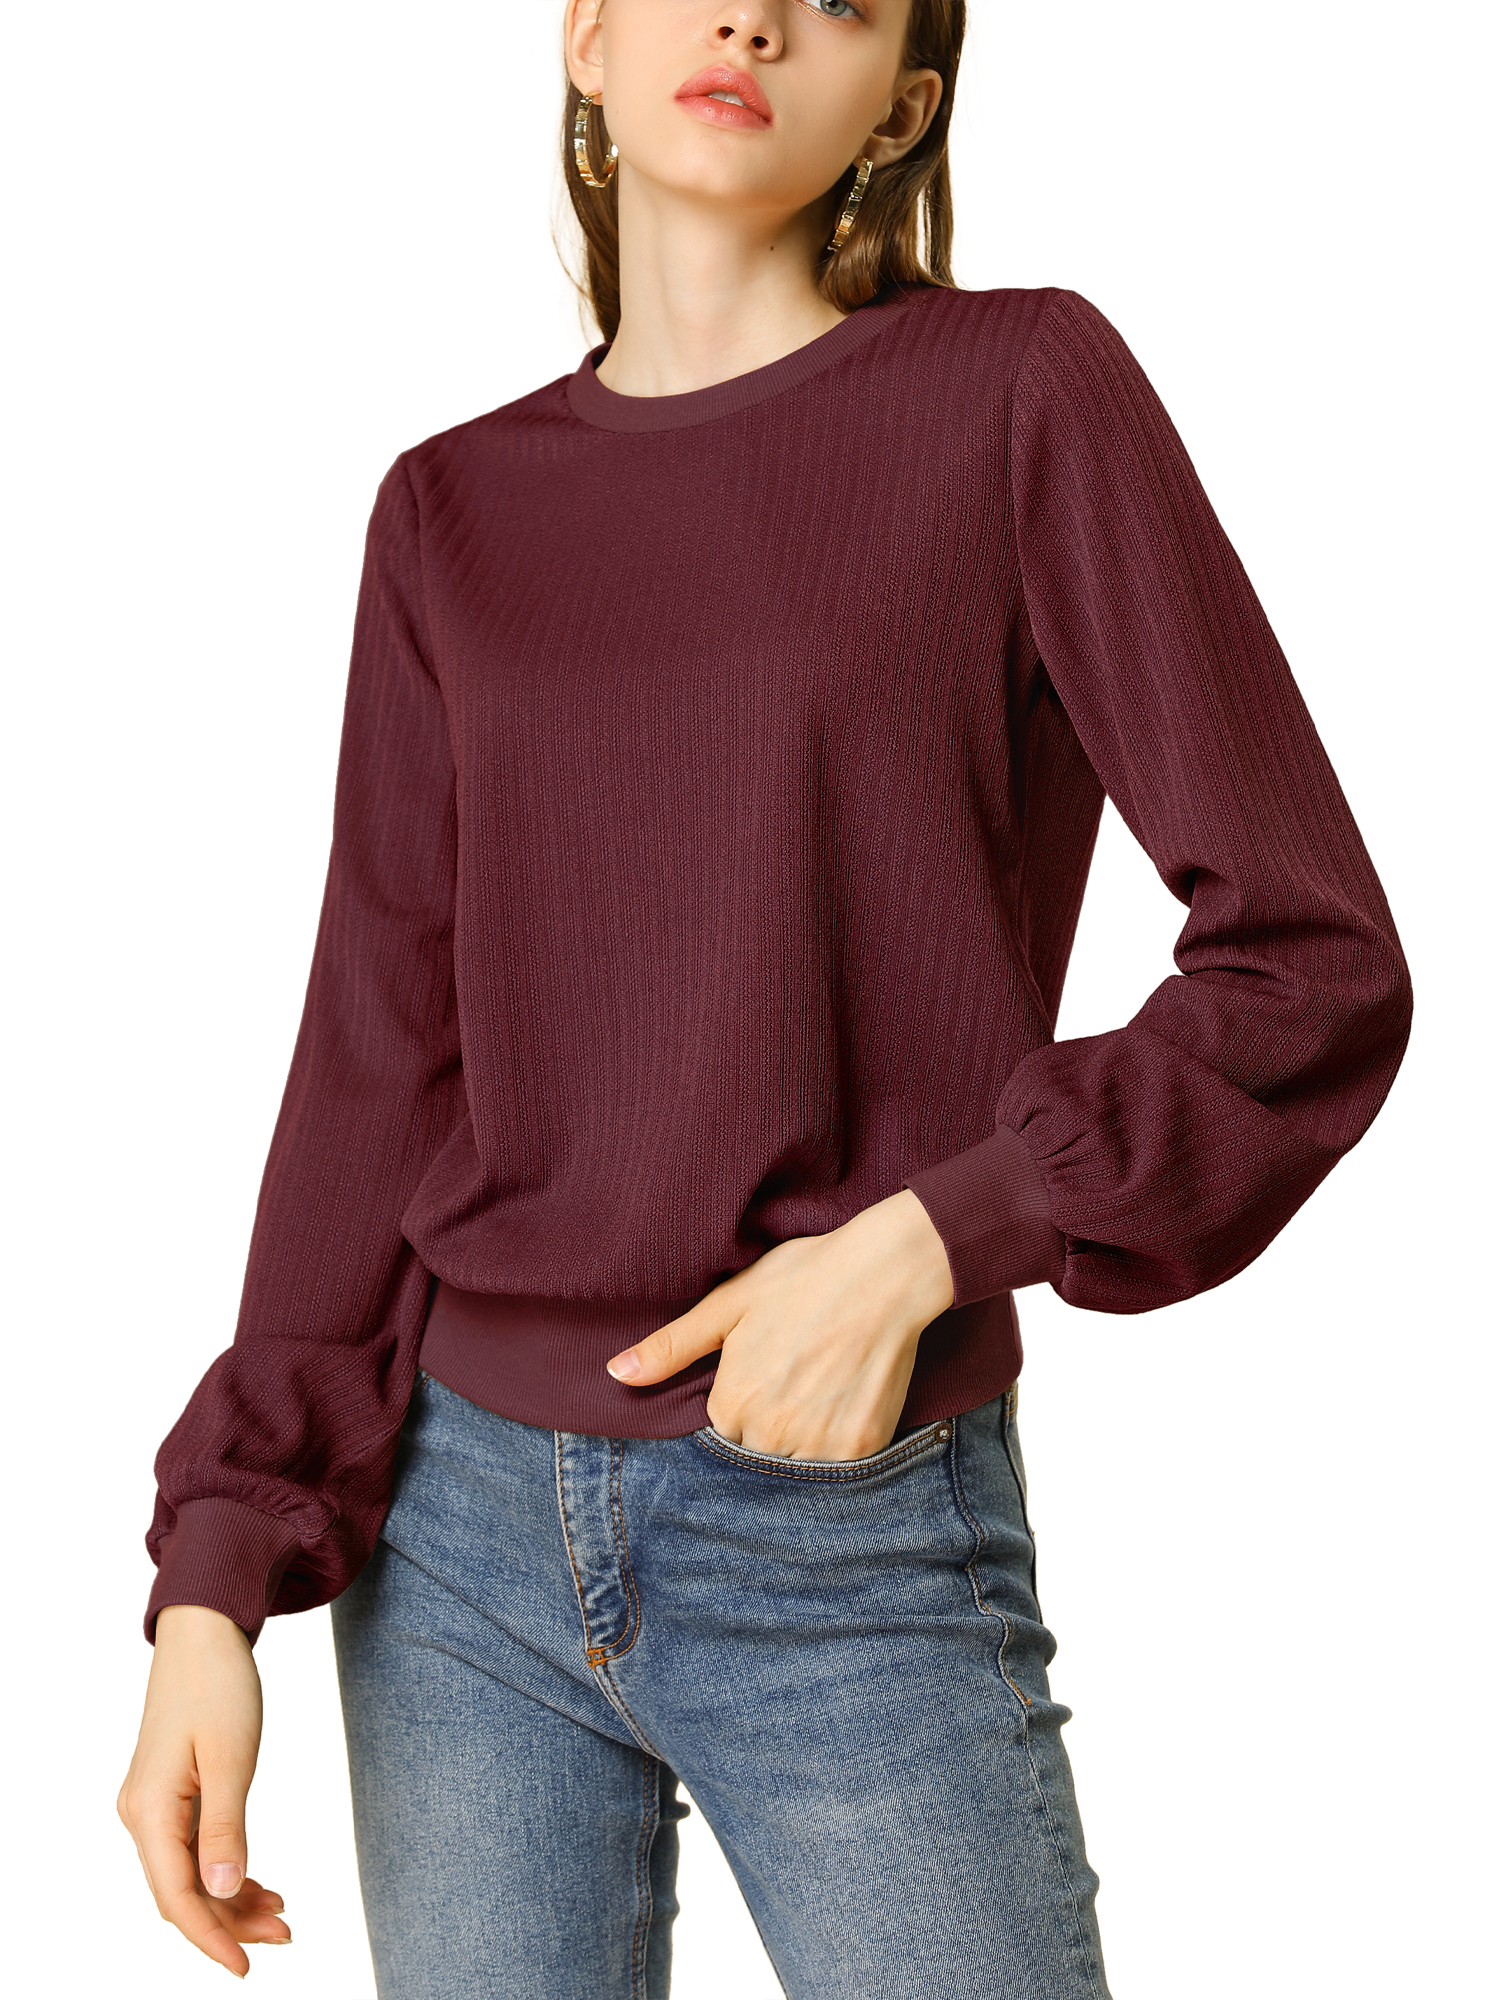 Allegra K Women's Lantern Sleeves Blouson Ribbed Top Sweater Burgundy XL